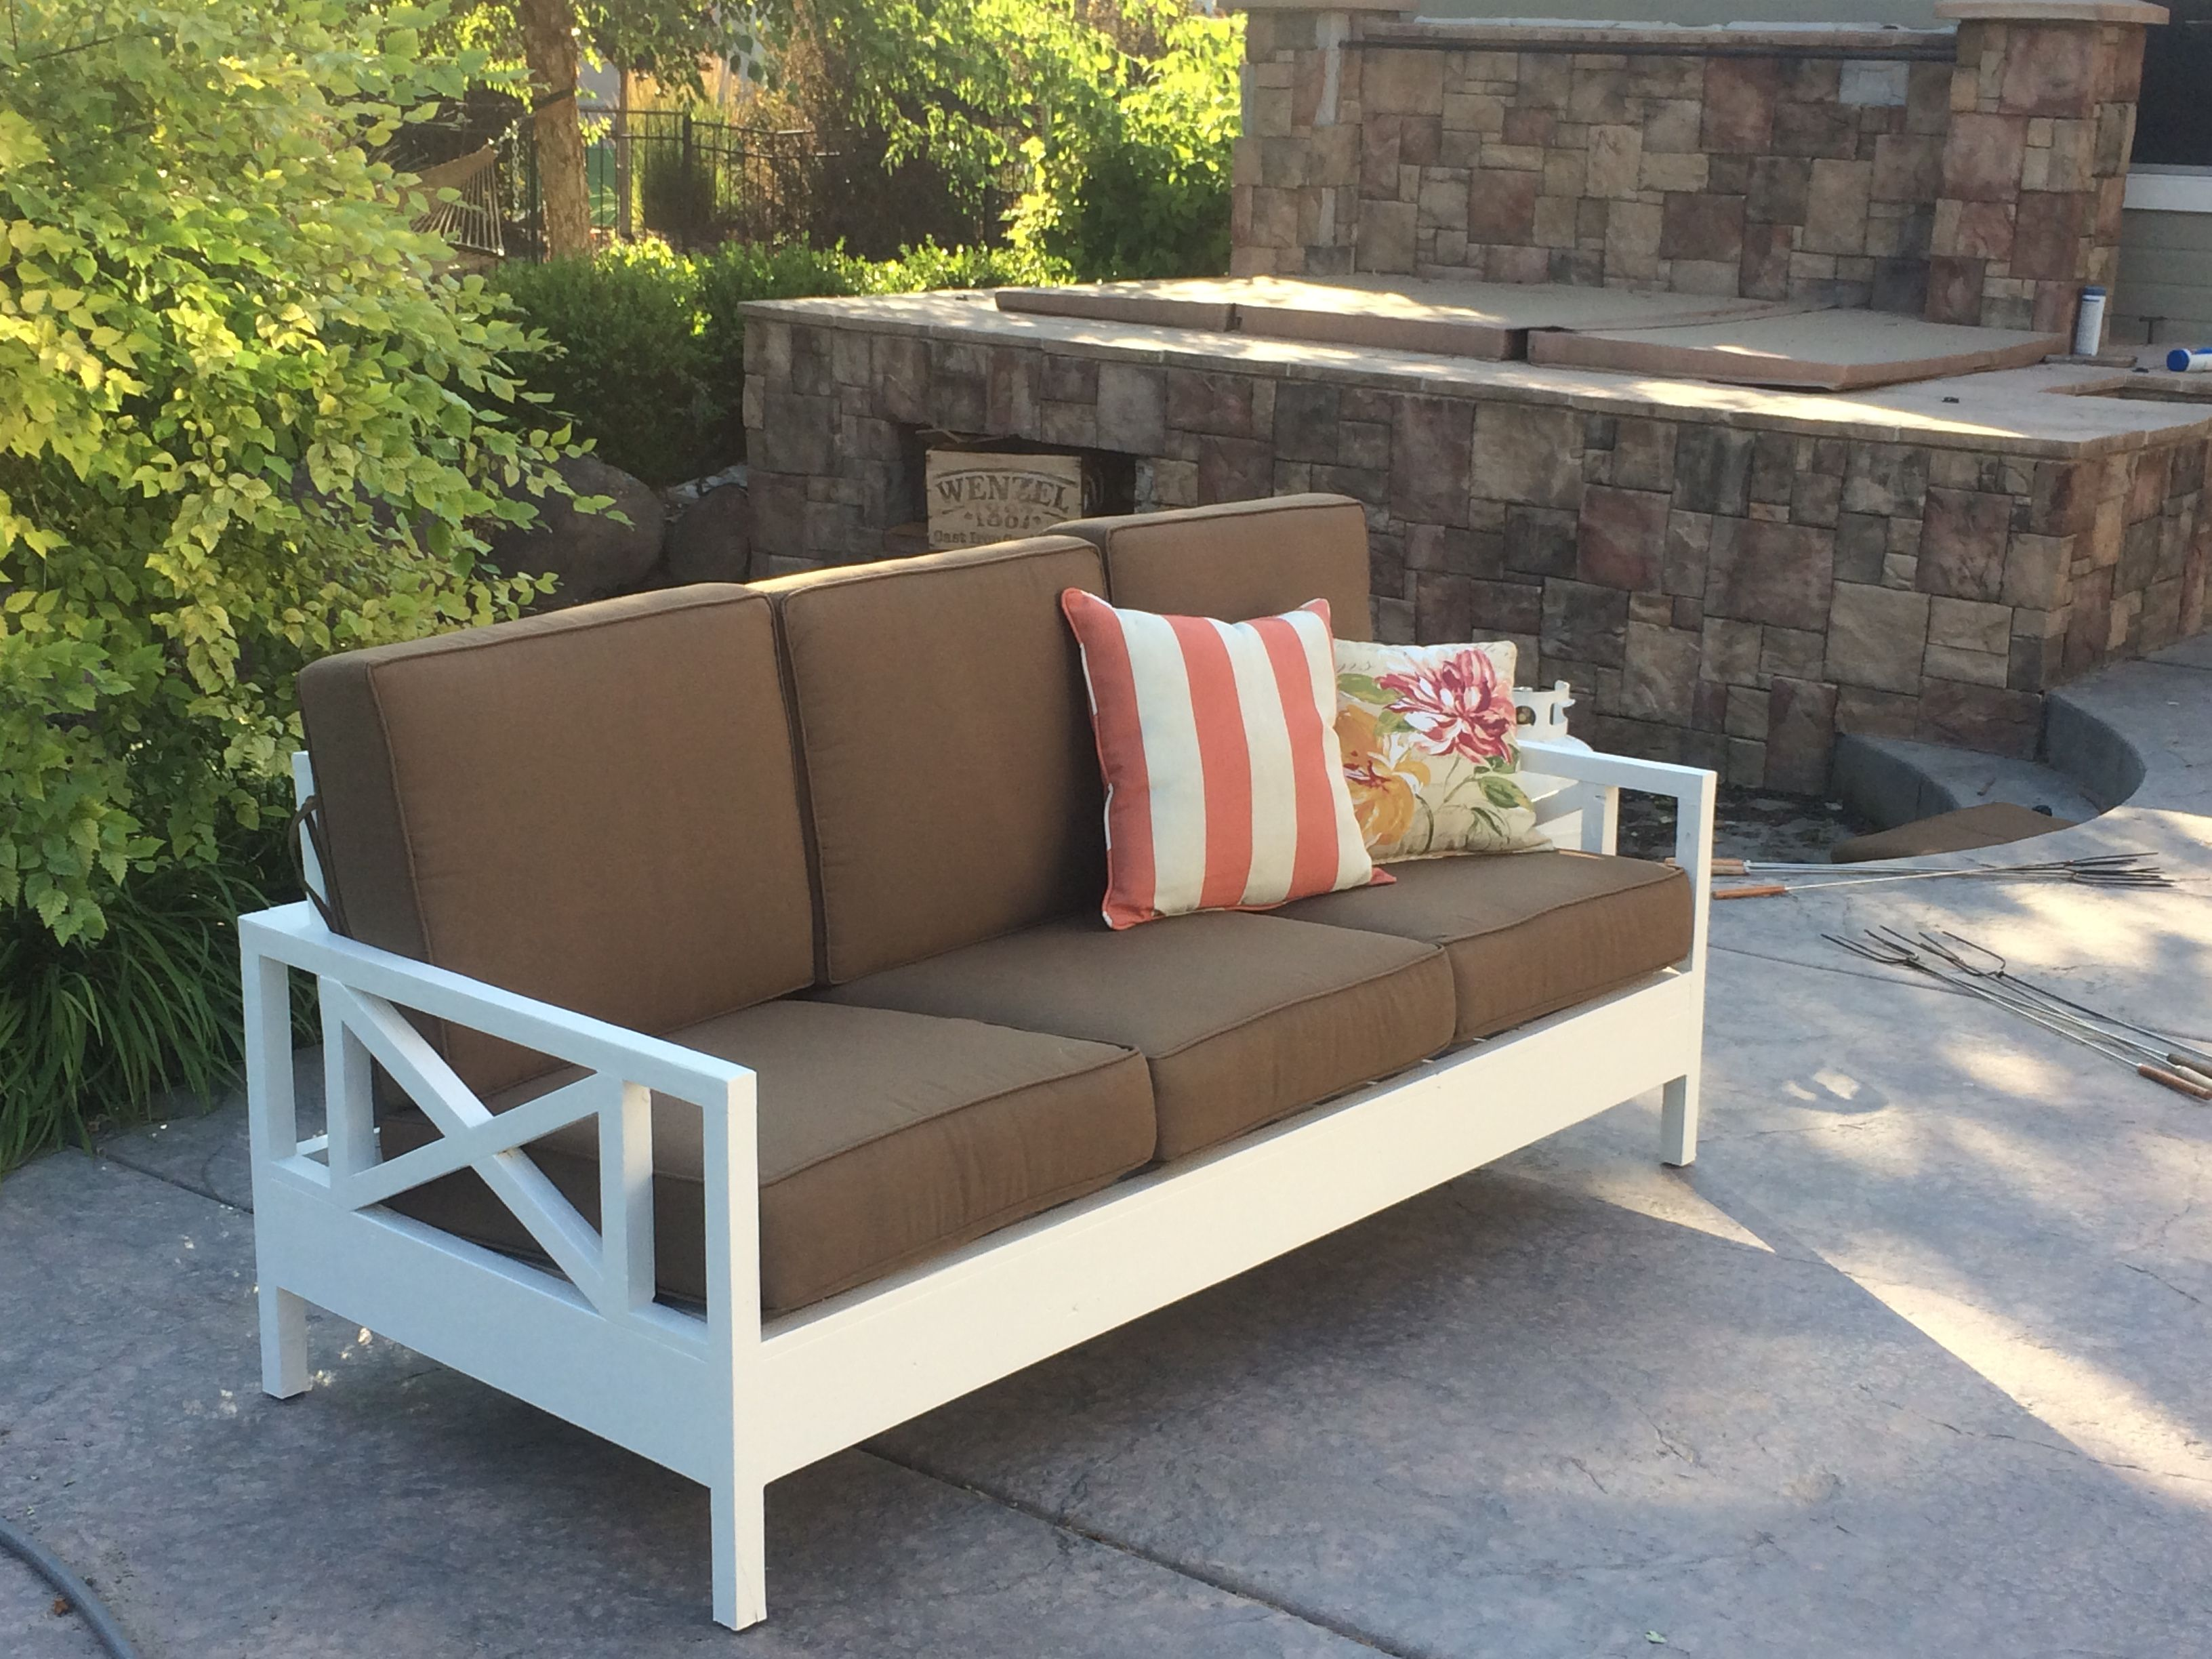 Outdoor Sofa Mashup Do It Yourself Home Projects from